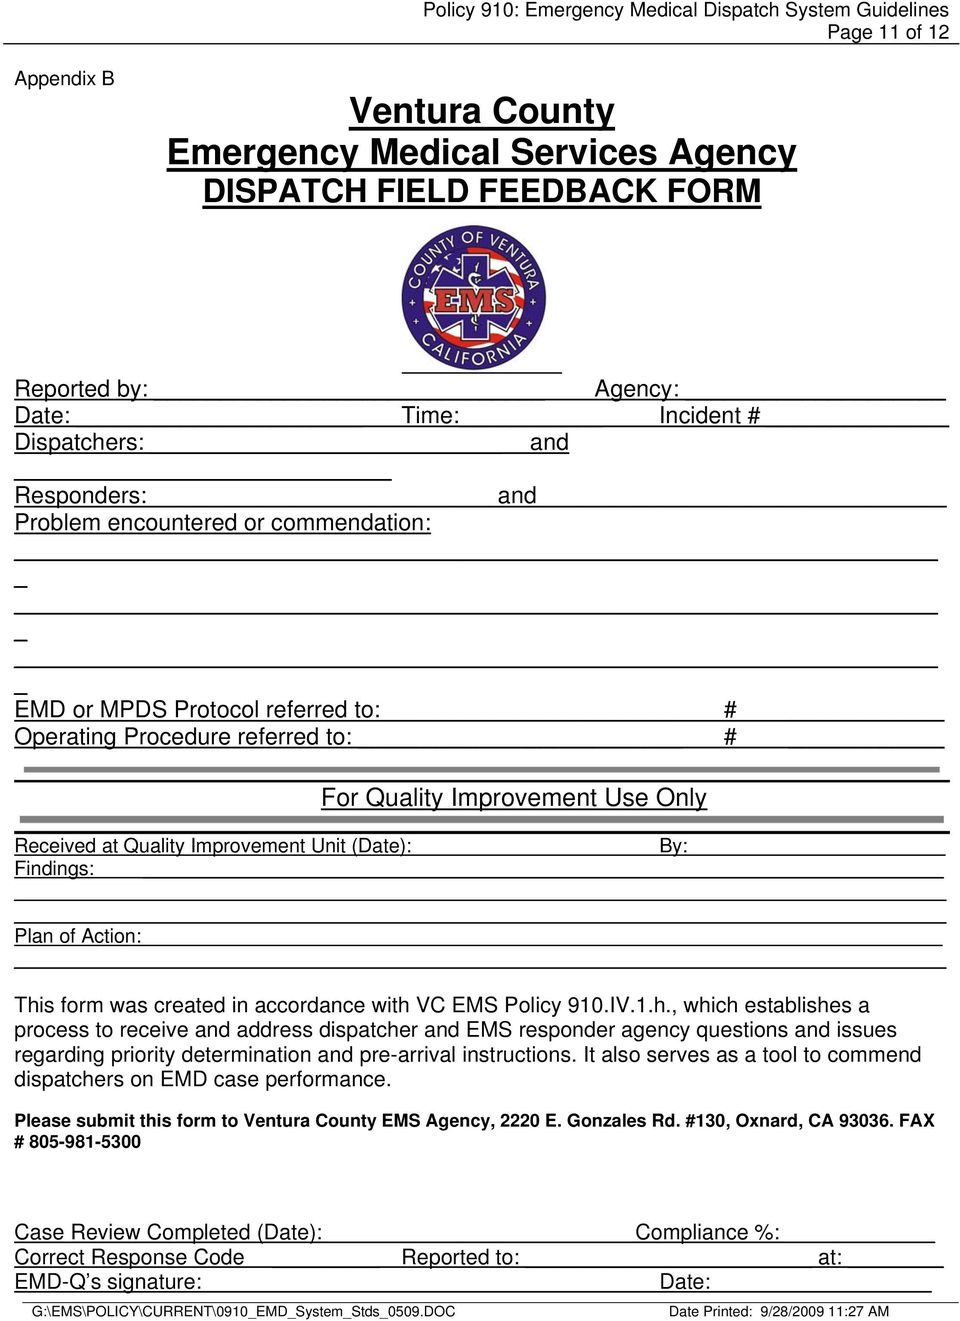 This form was created in accordance with VC EMS Policy 910.IV.1.h., which establishes a process to receive and address dispatcher and EMS responder agency questions and issues regarding priority determination and pre-arrival instructions.